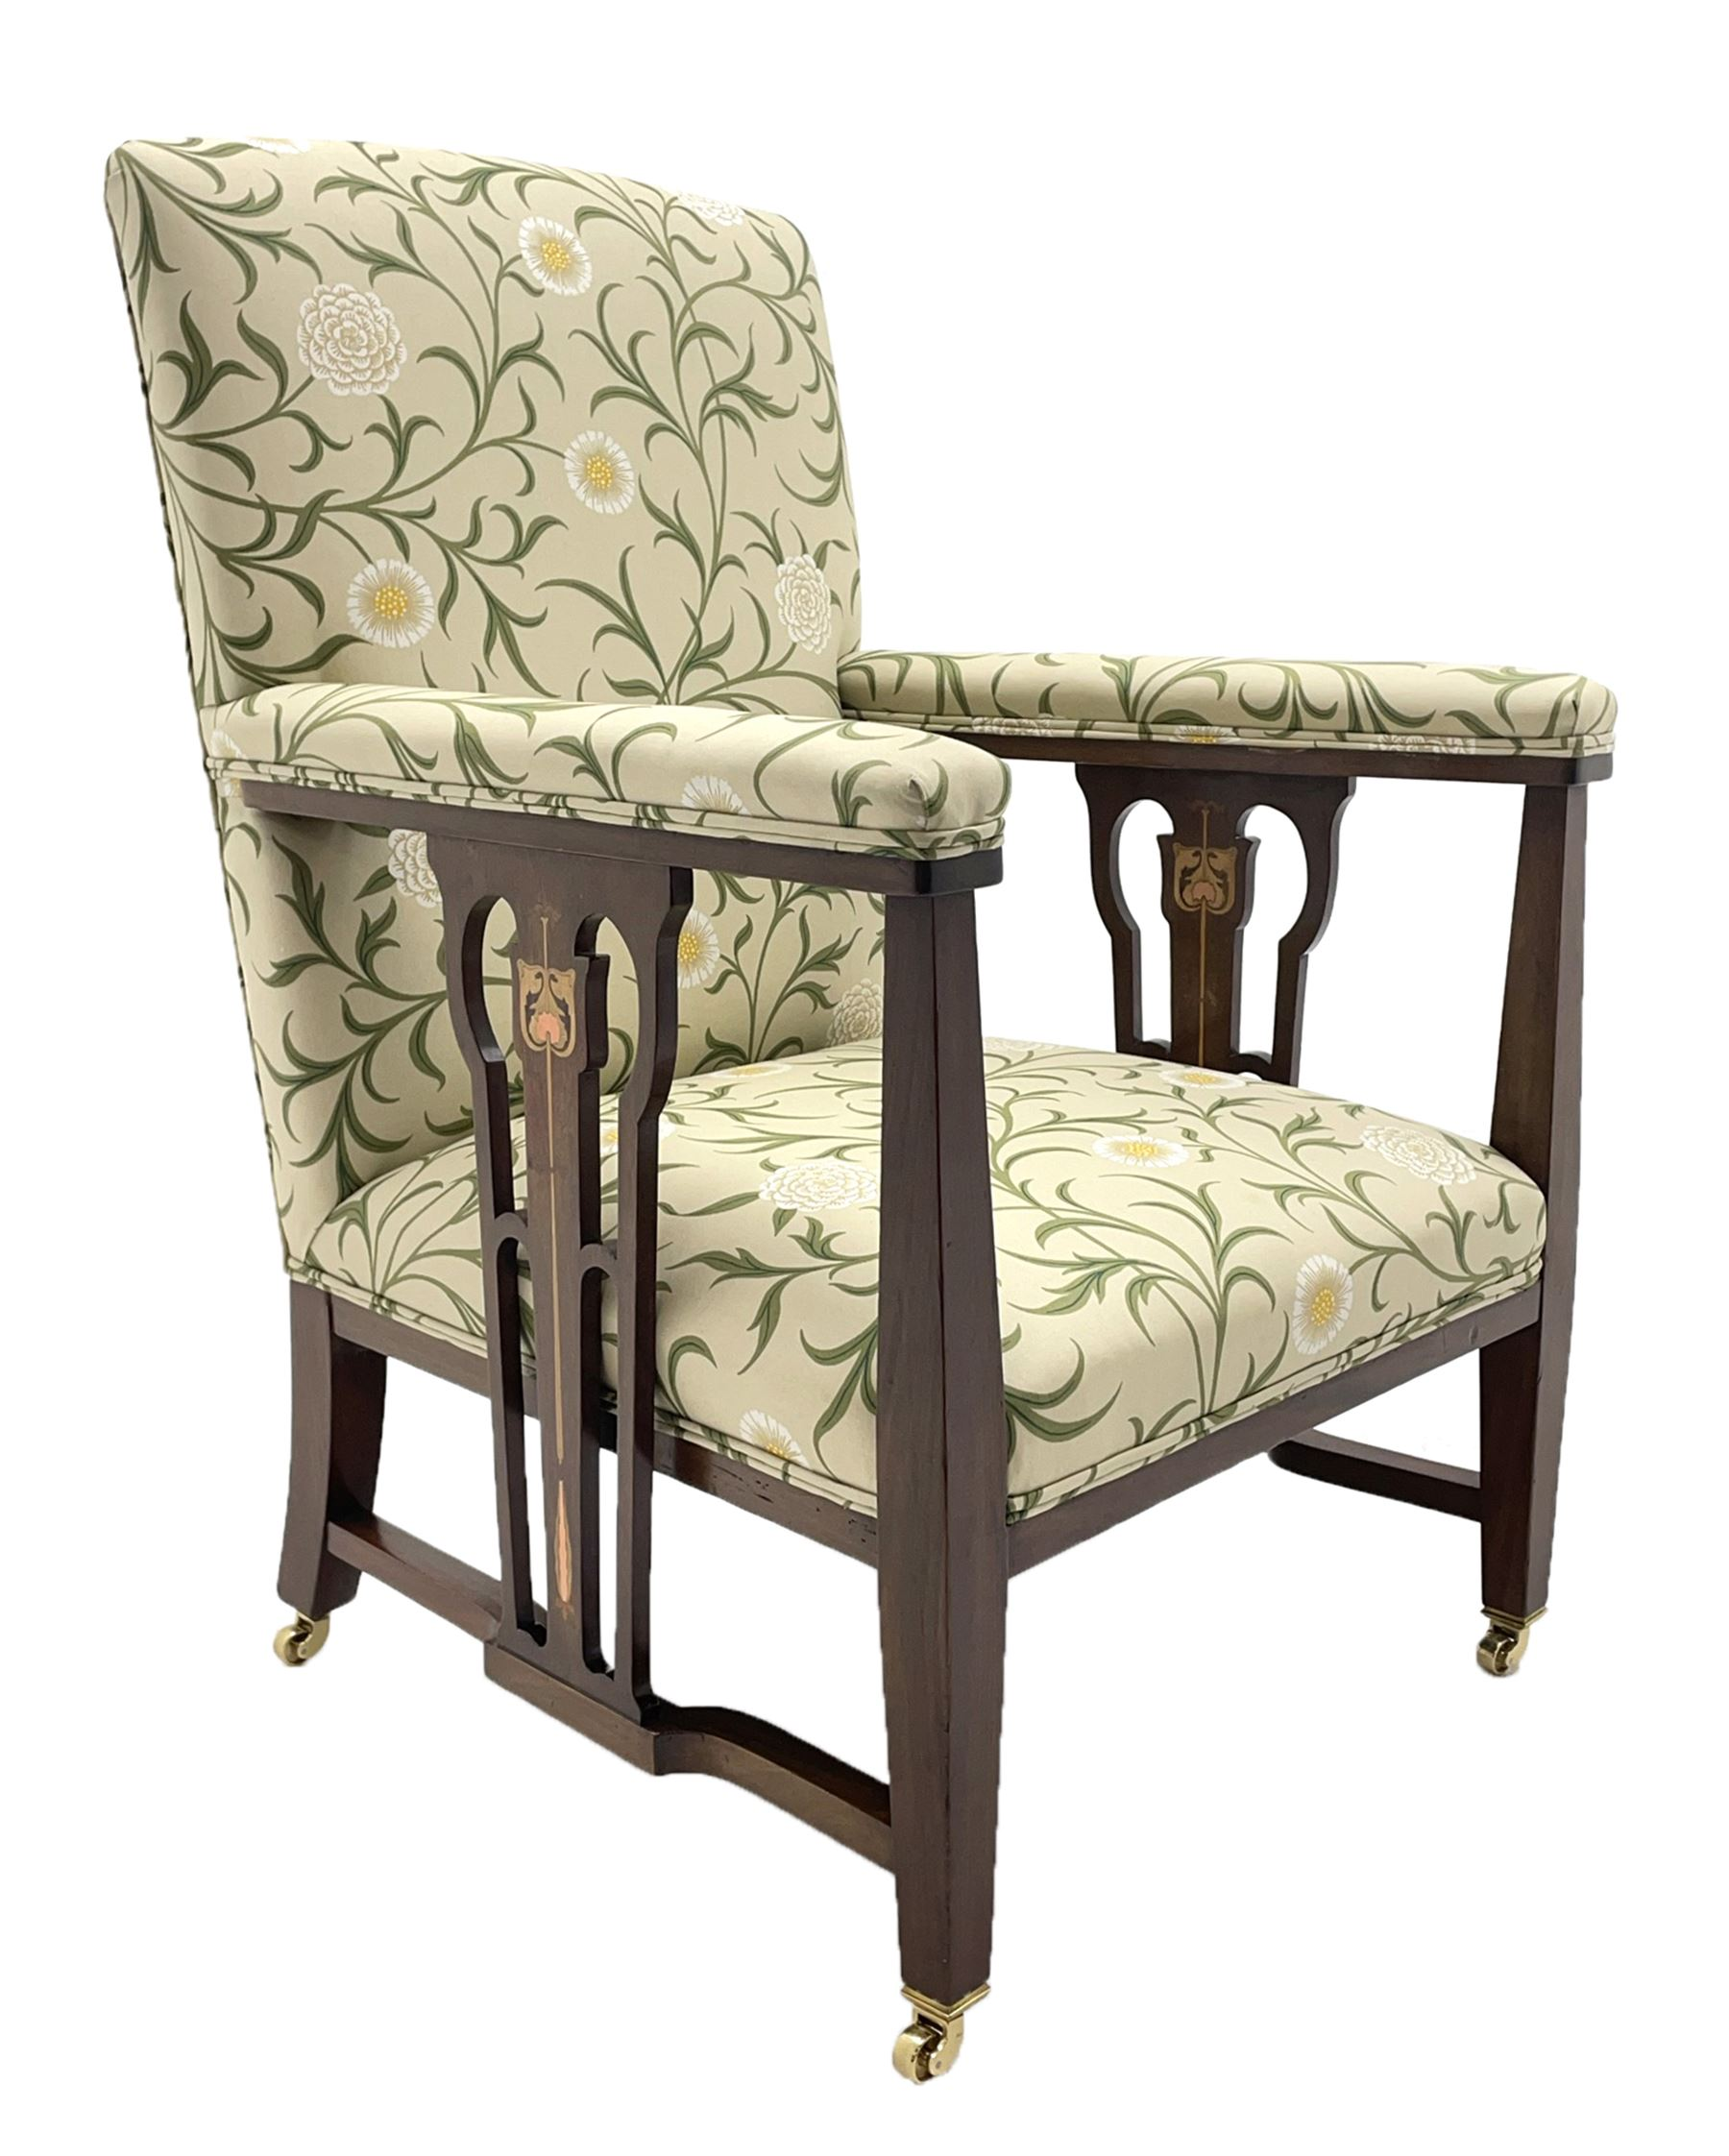 Late 19th century Arts and Crafts mahogany armchair